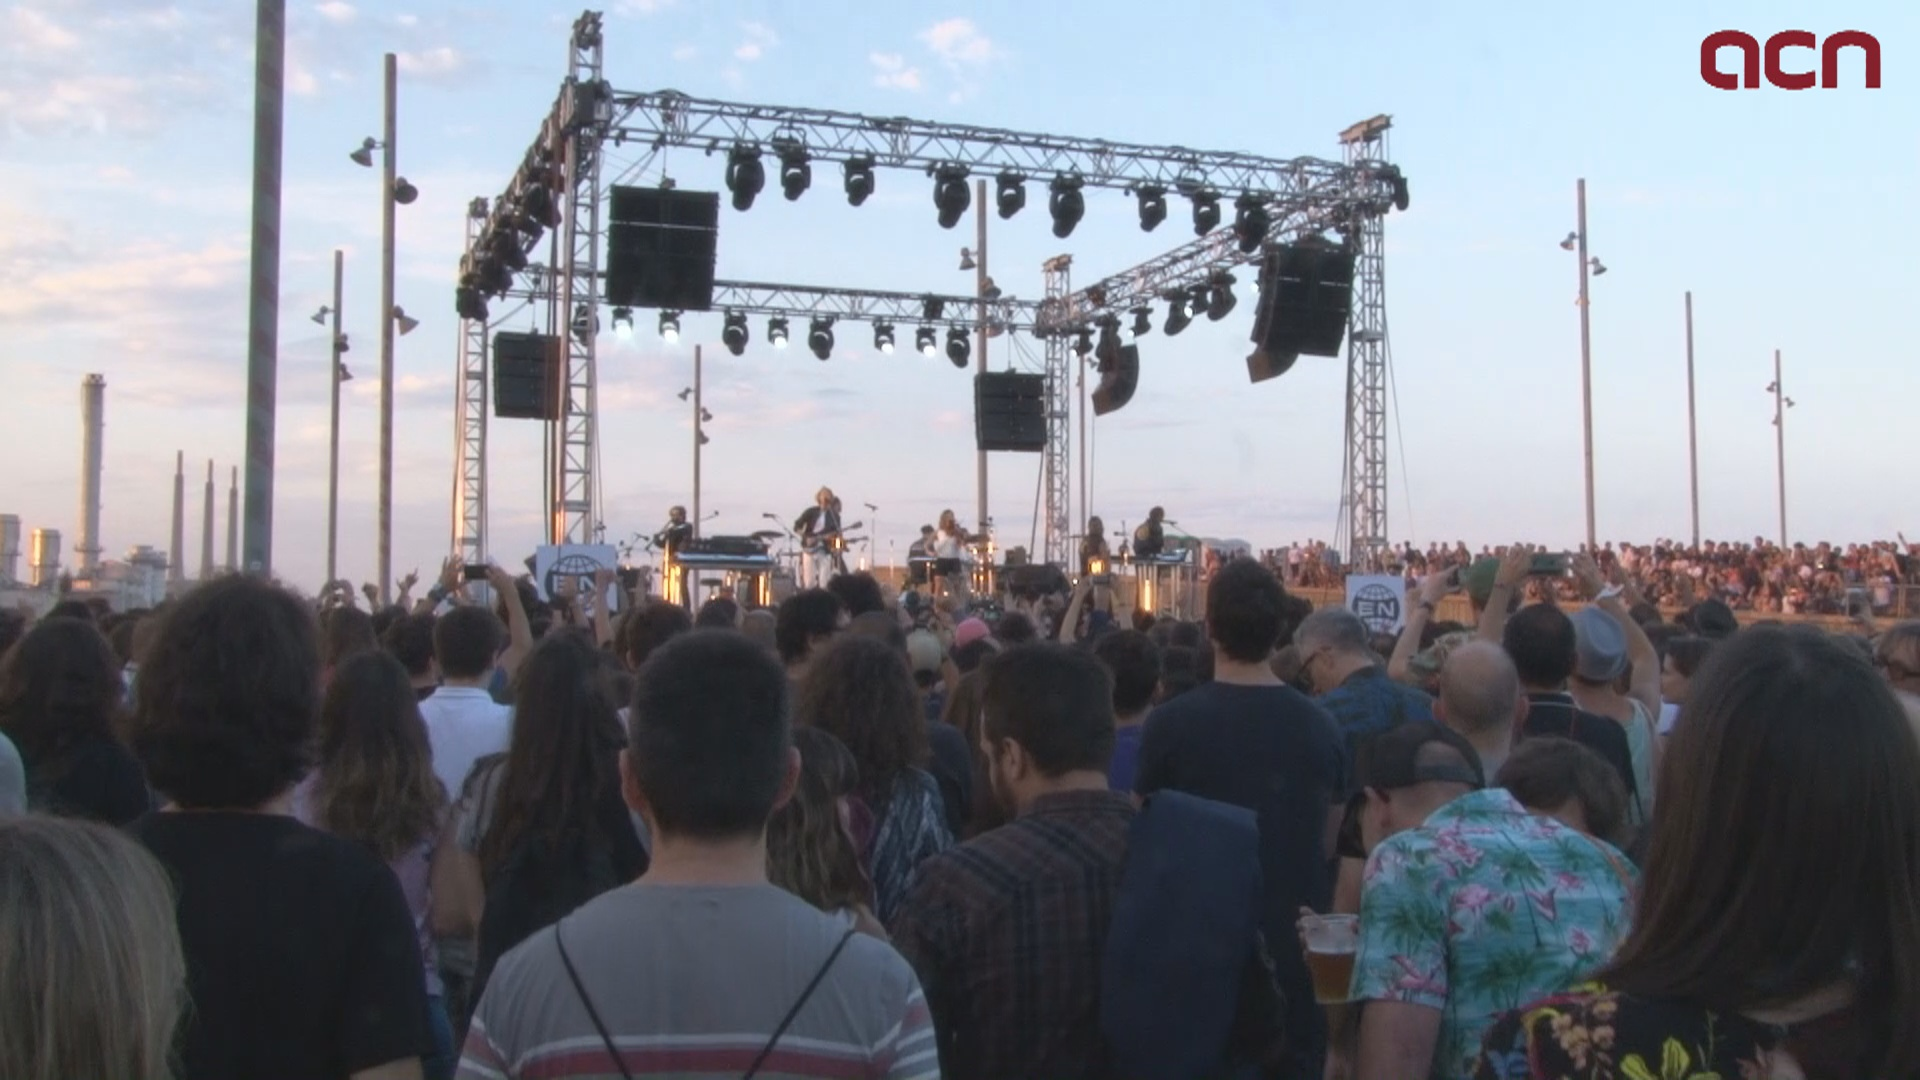 More than 200,000 people attended Primavera Sound 2017